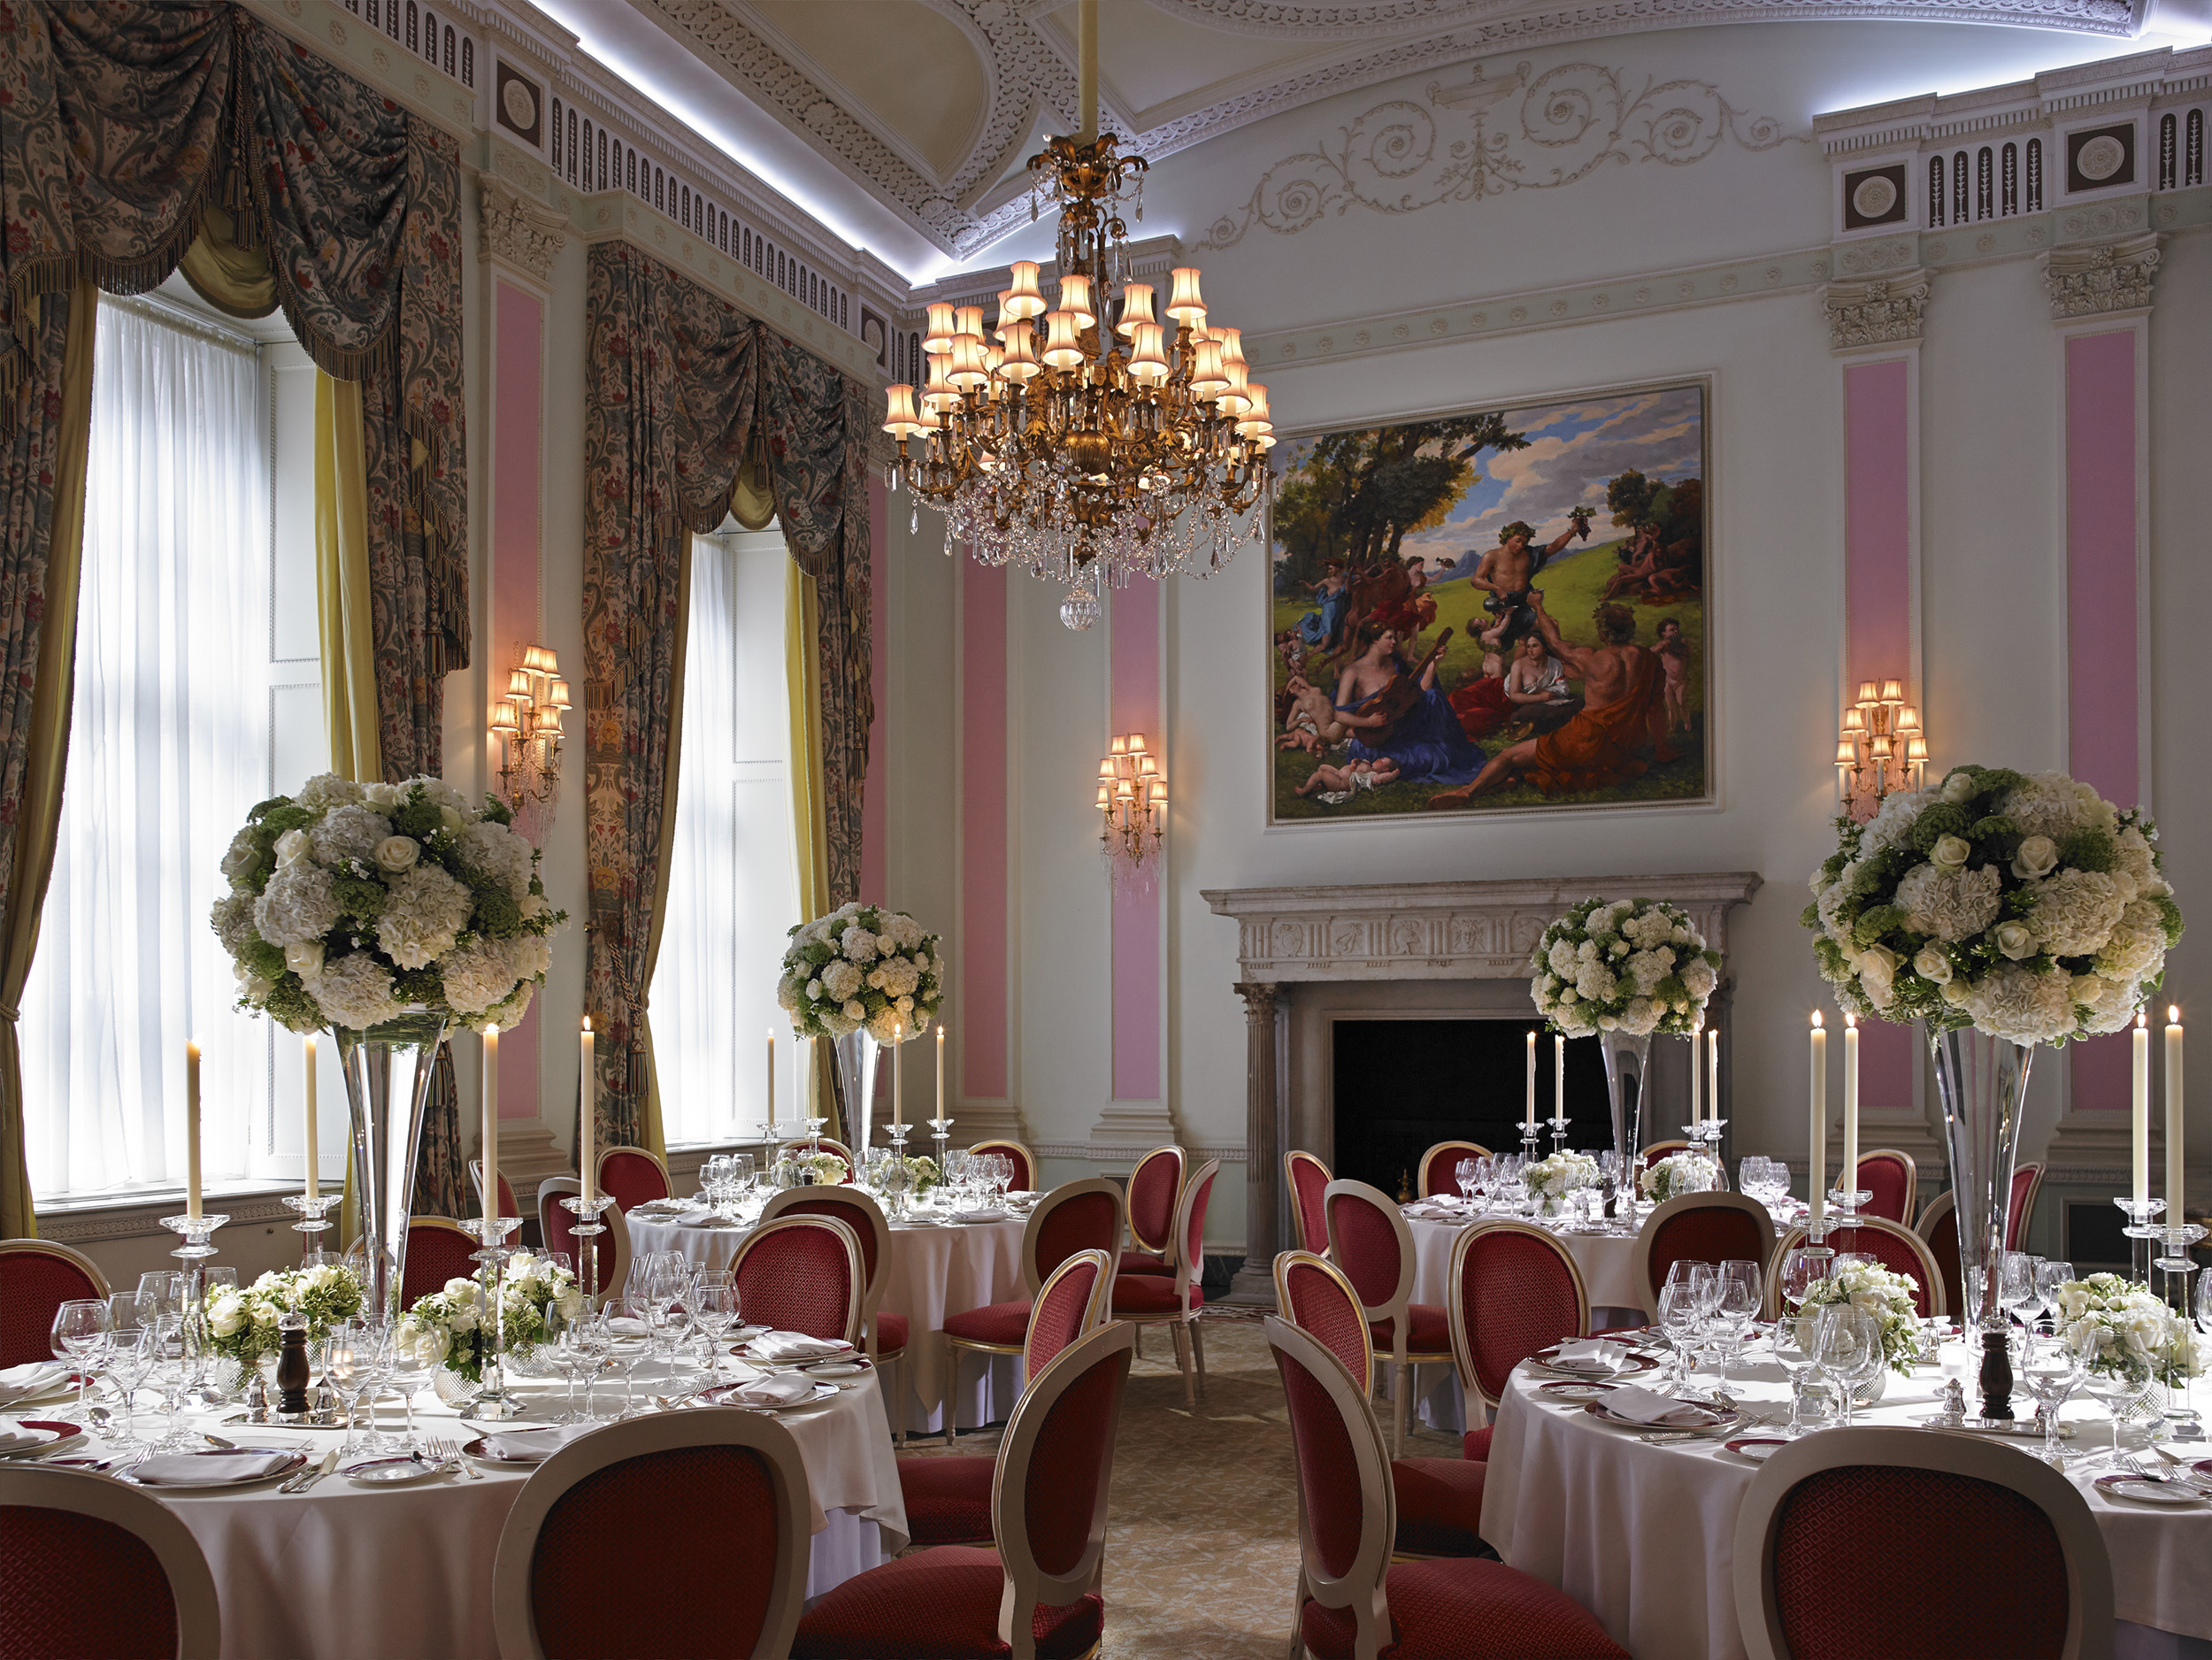 The Music Room at The Ritz - London